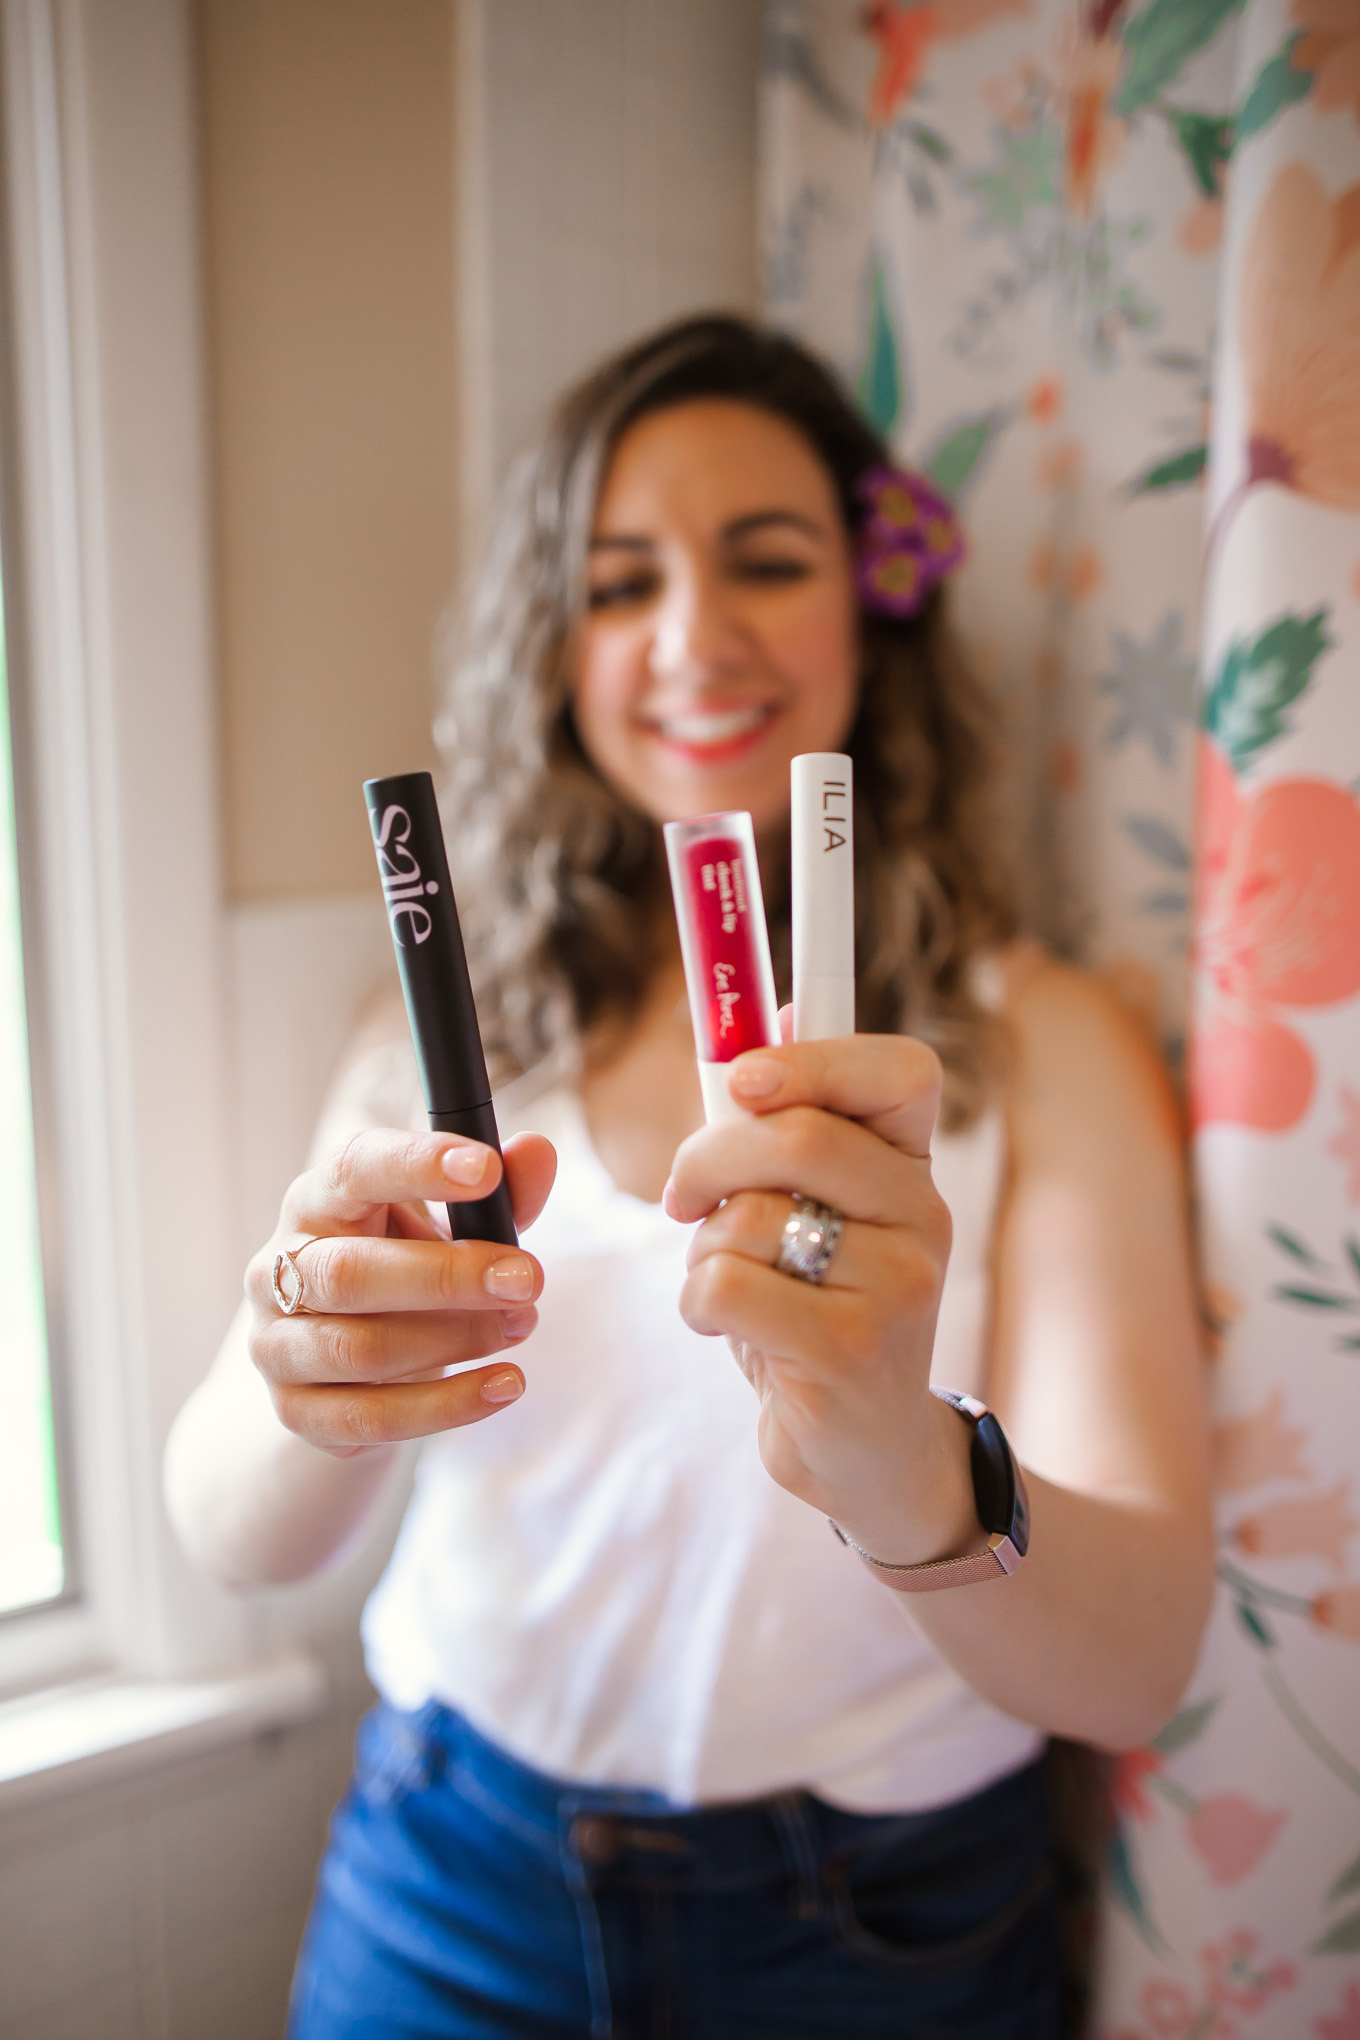 Clean Beauty by popular Chicago beauty blog, Glass of Glam: image of a woman in a white tank top and jeans and standing in front of a floral shower curtain while wearing RMS Beauty Un Cover-Up, Saie Mascara, Ere Perez Lip and Cheek Tint, RMS Beauty Lip2Cheek, Ilia Brow Gel, RMS Beauty Magic Luminizer